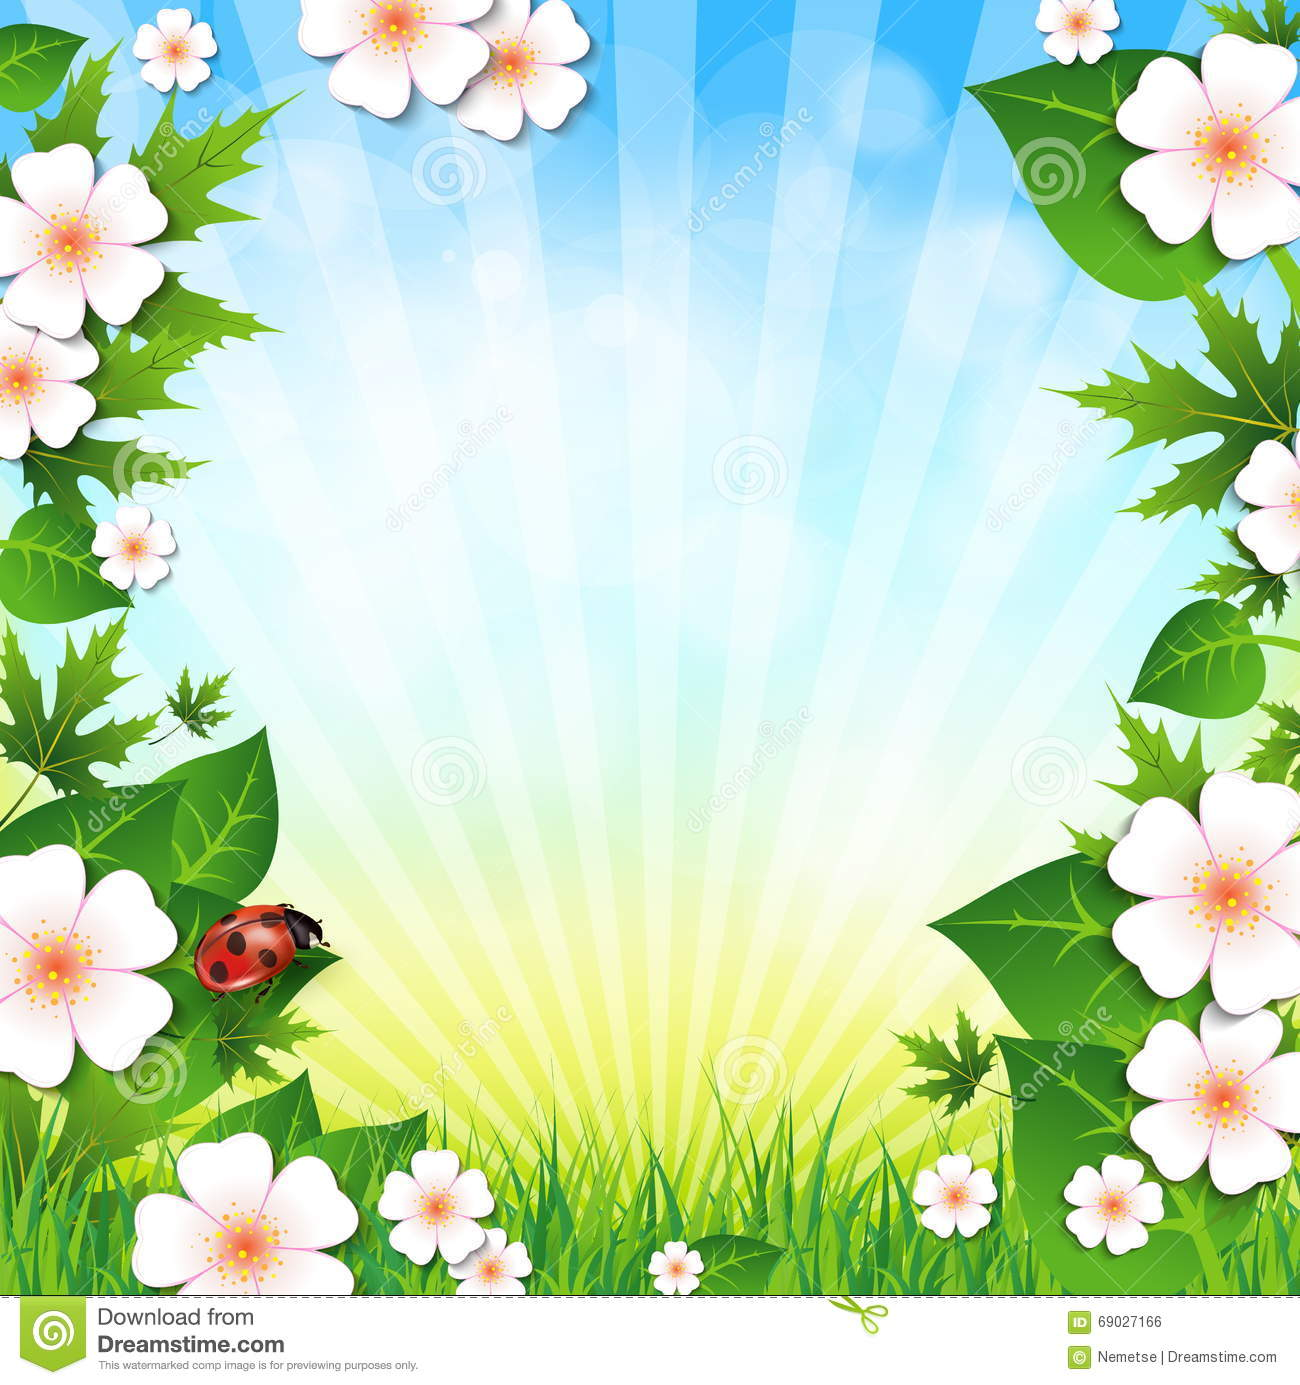 Spring Green Leaves And Flowers Background With Plants: Spring Or Summer Background With Grass Leaves And Flowers